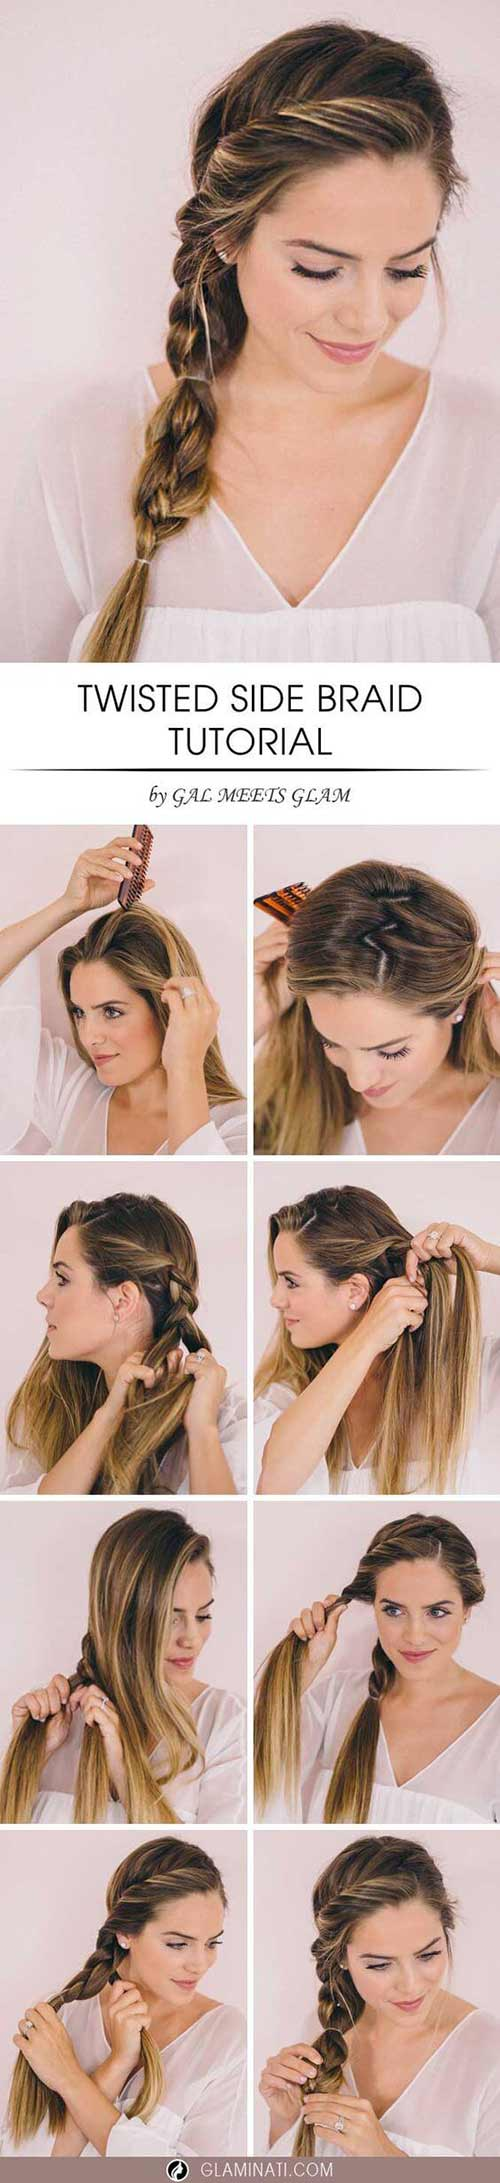 19. Twisted Side Braid